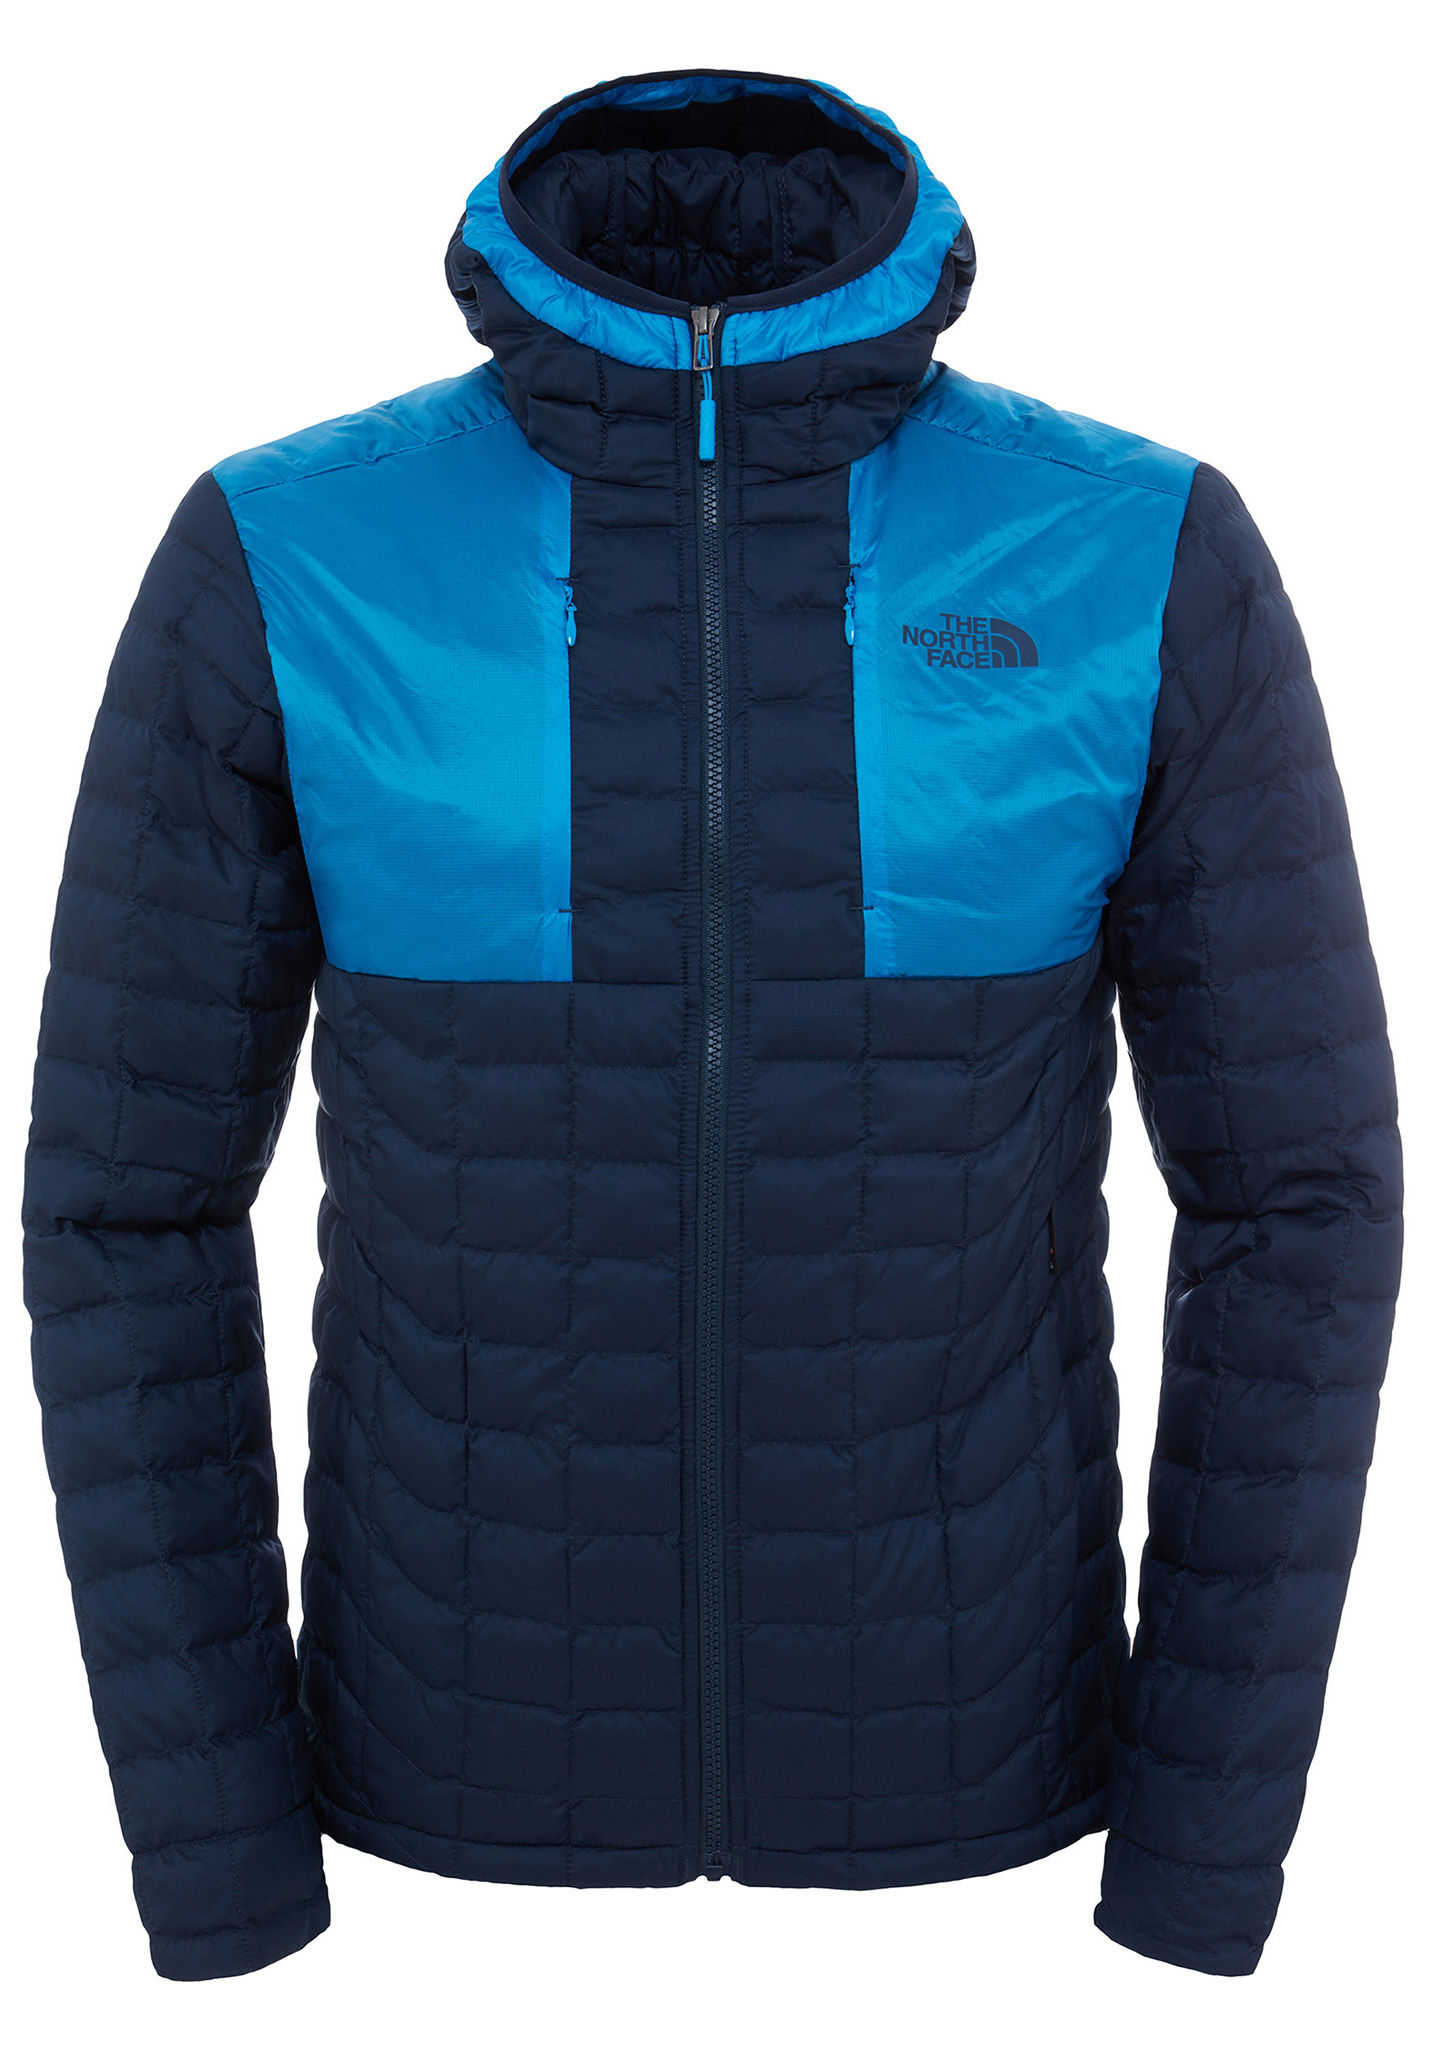 THE NORTH FACE Thermoball Plus - Functional Jacket for Men - Blue - Planet  Sports fa81bfc9f63b